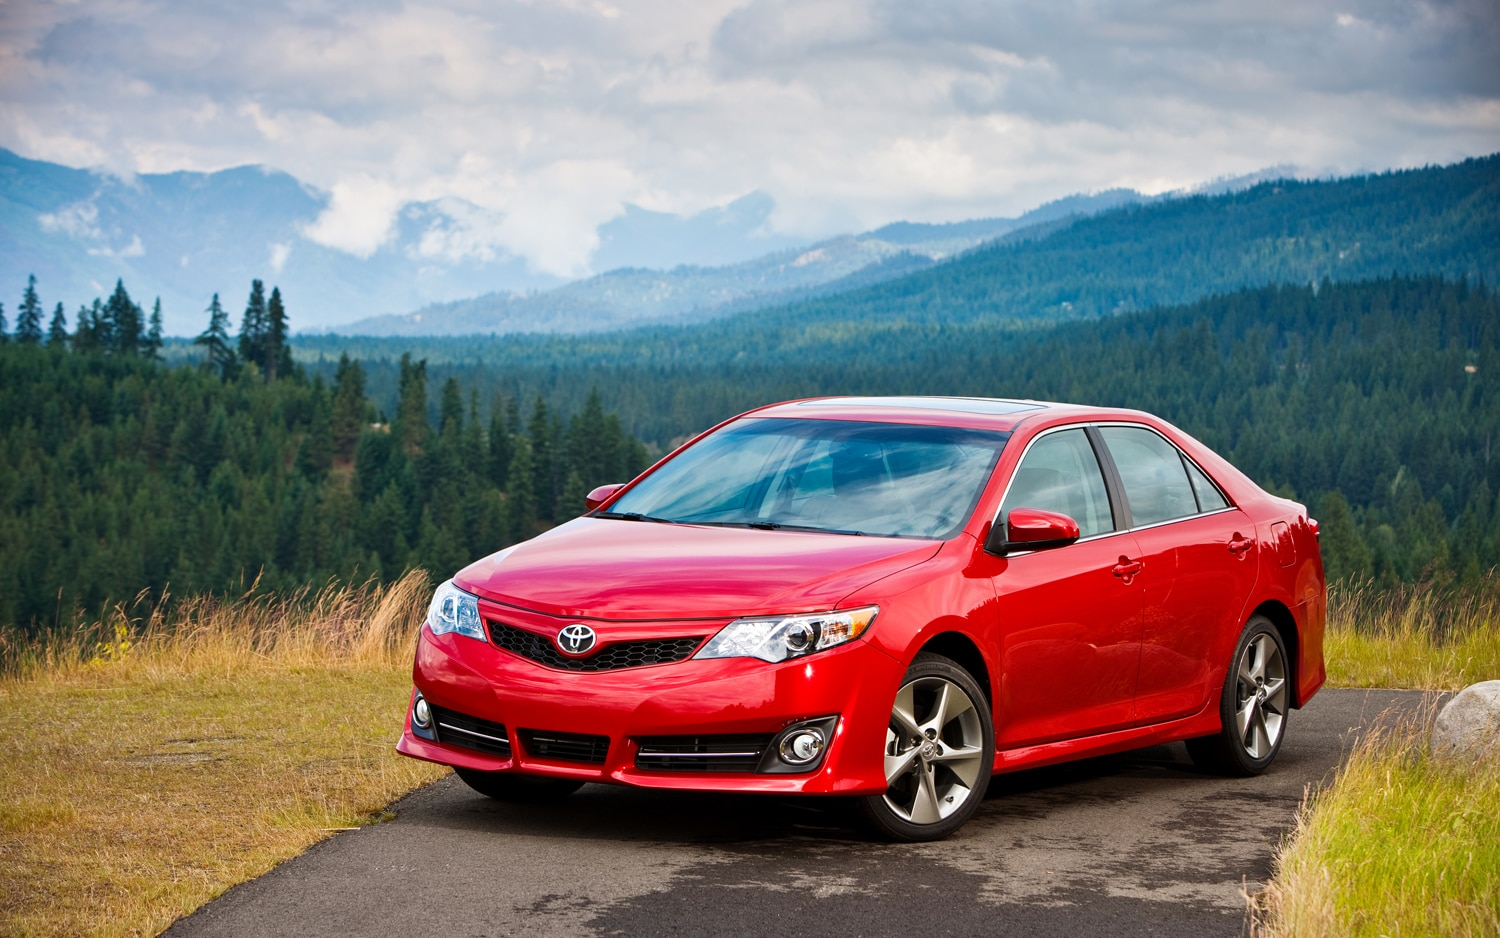 2012 Toyota Camry SE Front Left View1